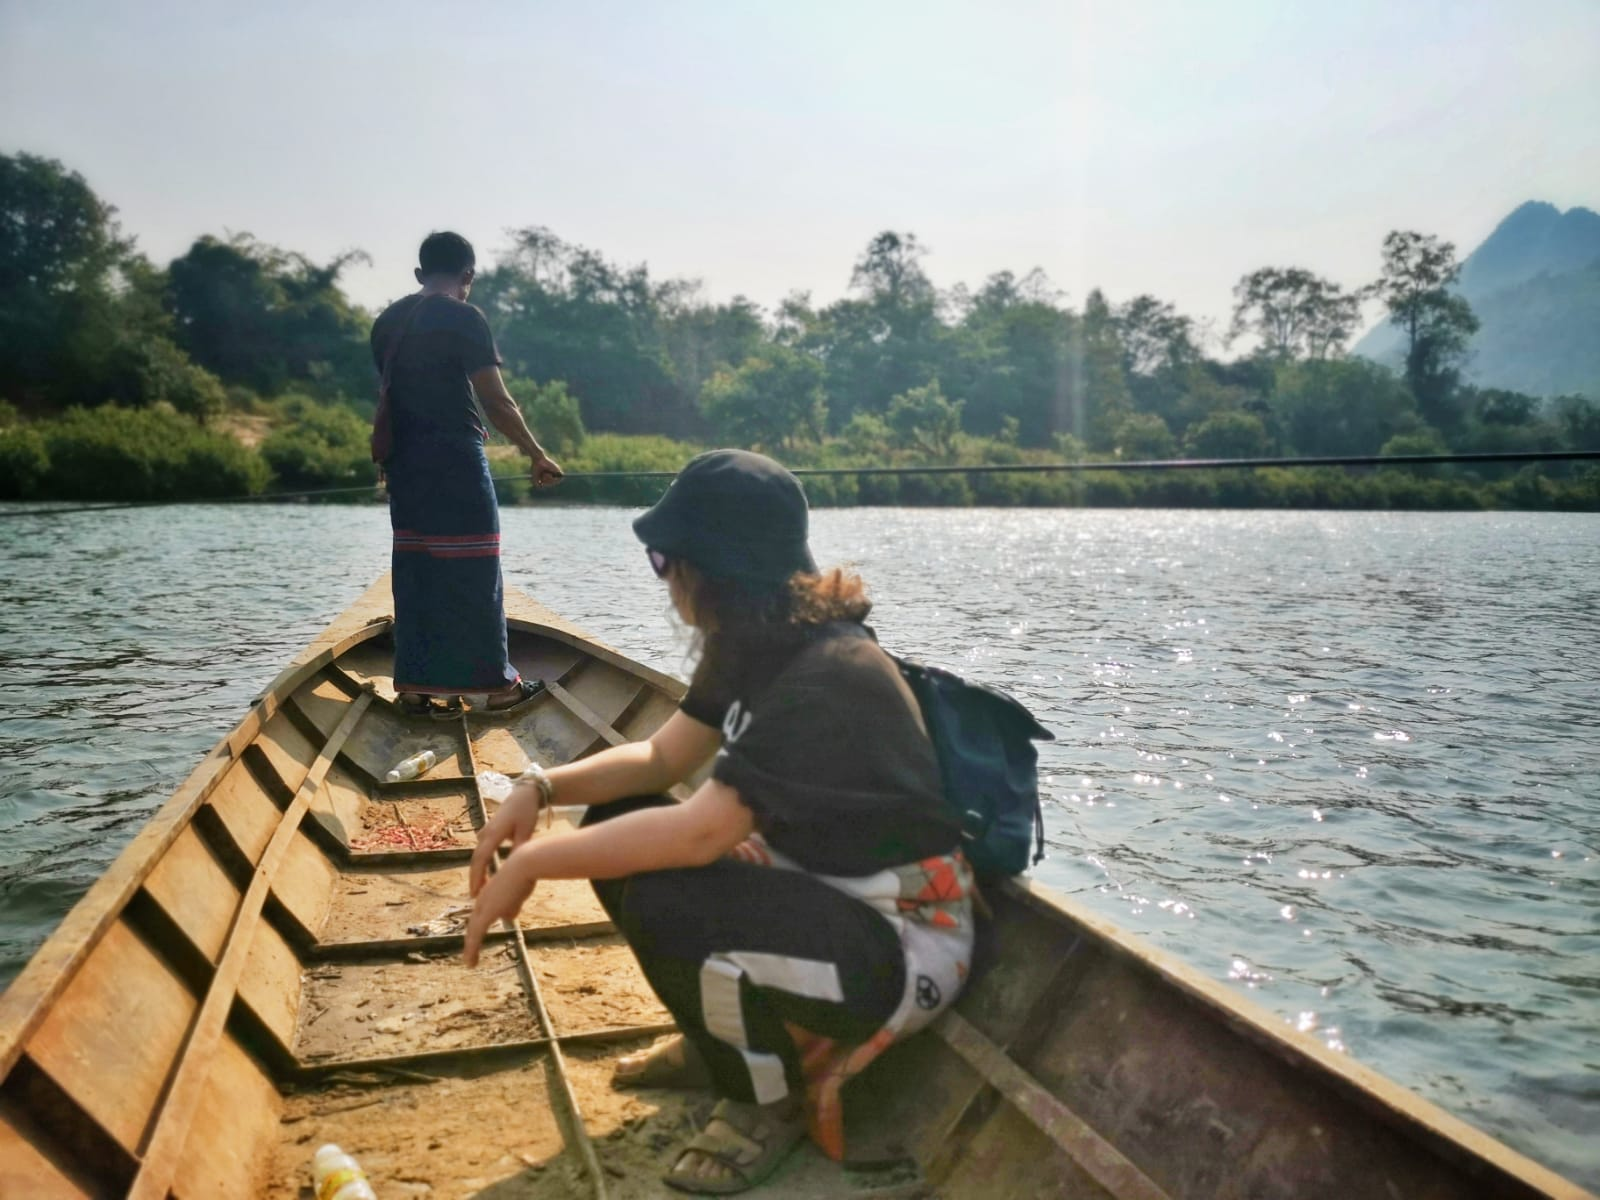 The 1st day was tough. We, me, the other volunteer and 2 of Sabine's kids, had the task of bringing bricks from the other side of the river and through uphills